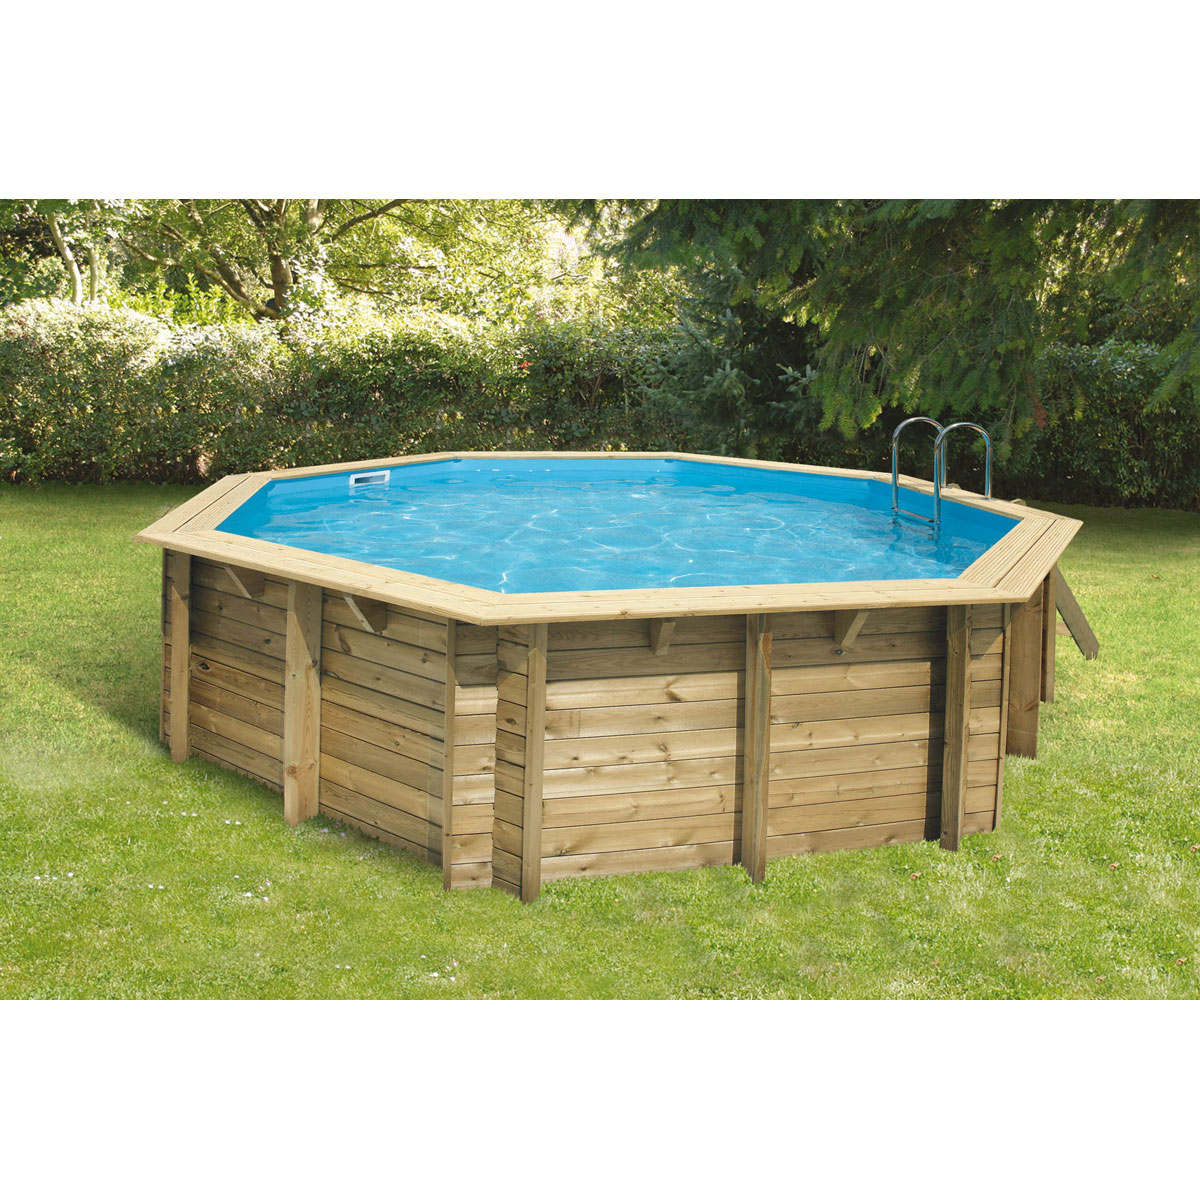 guide choisir sa piscine hors sol les piscines en bois les piscines autoportantes les. Black Bedroom Furniture Sets. Home Design Ideas